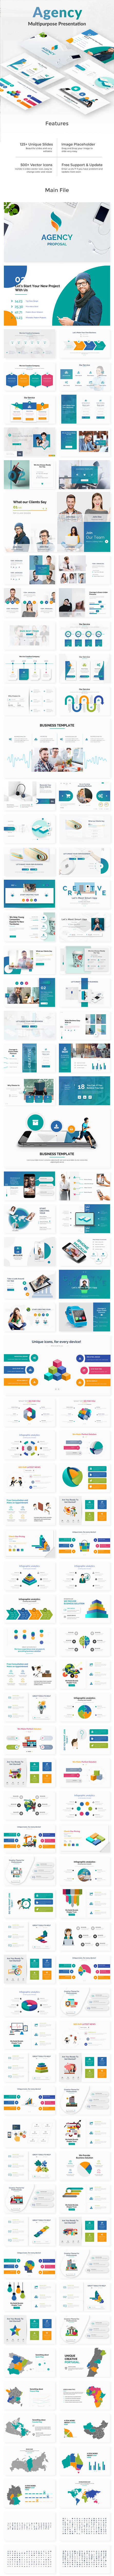 Agency Proposal Multipurpose Powerpoint Template - Business PowerPoint Templates